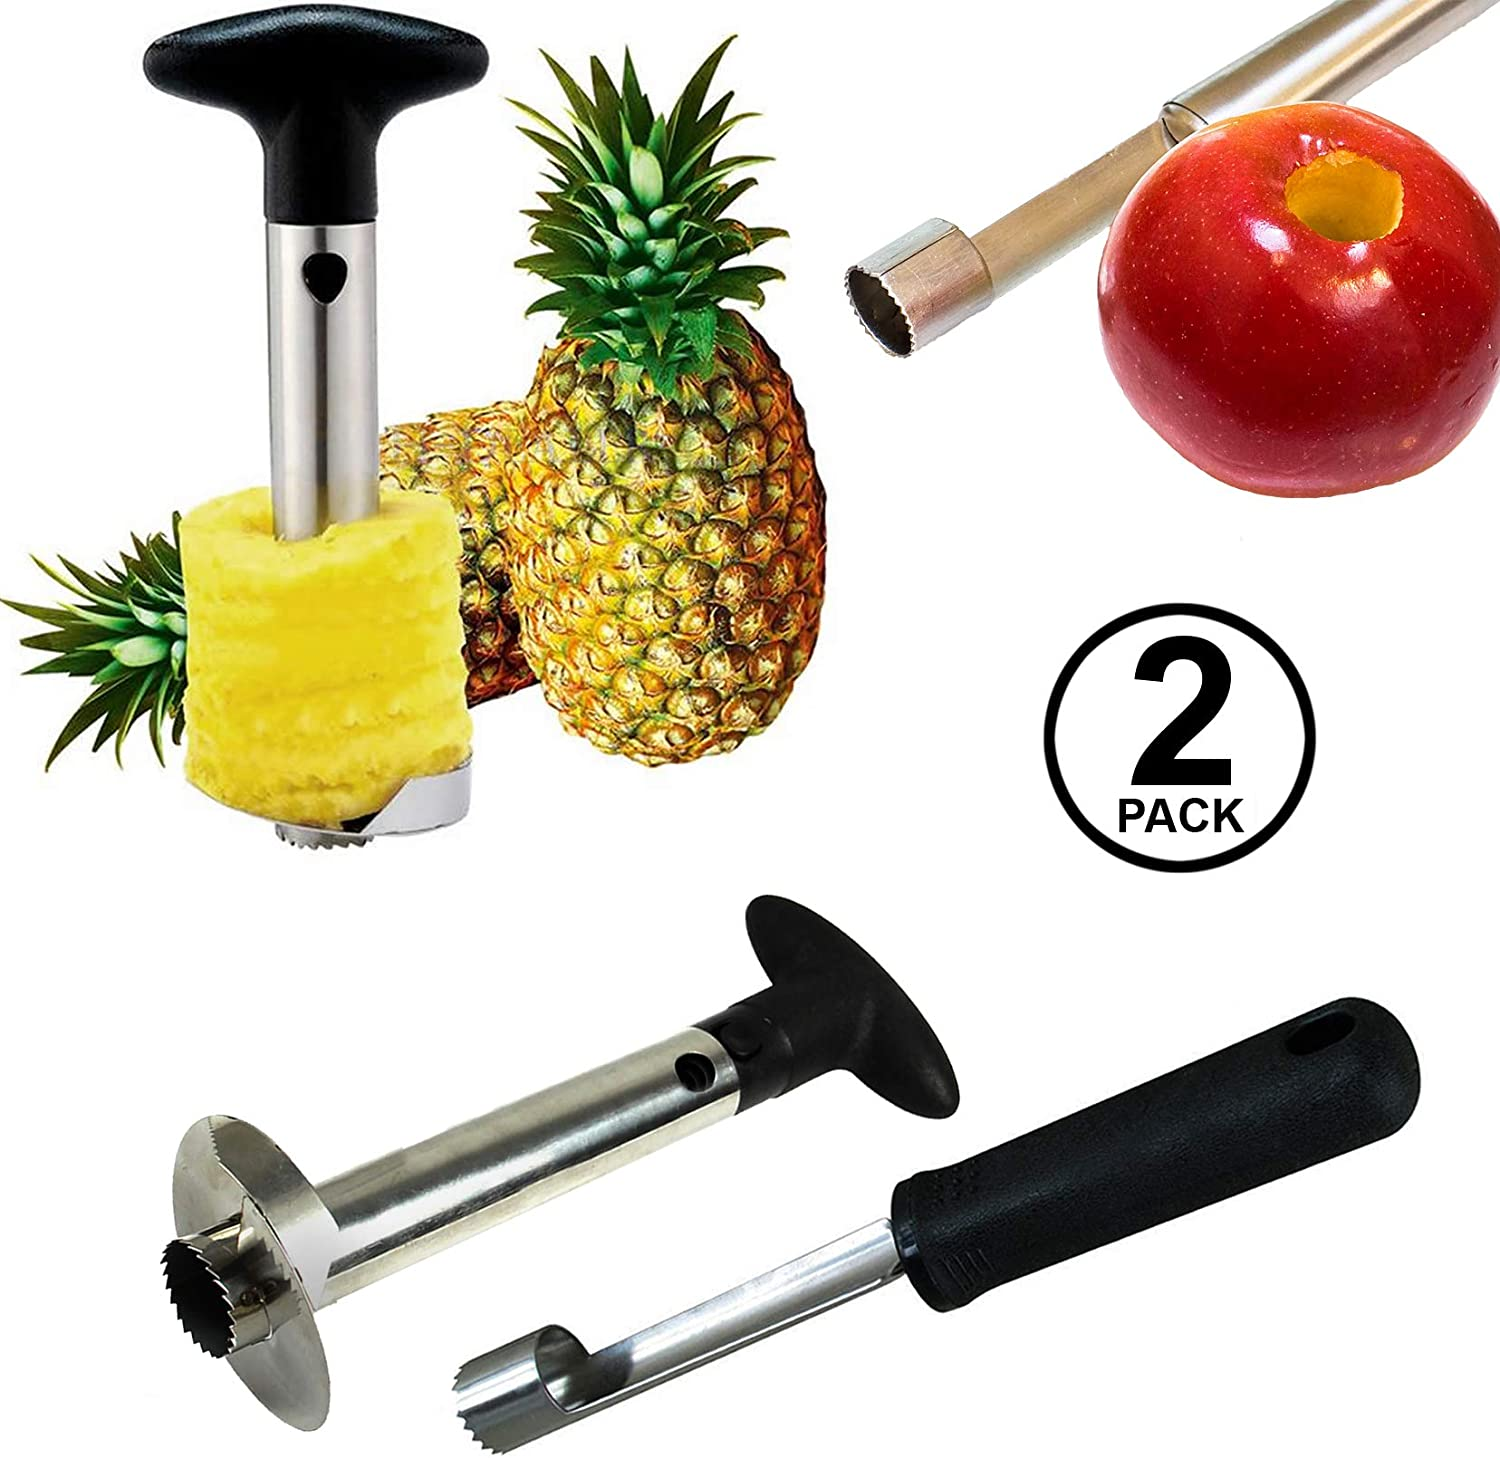 Pineapple Corer and Apple Corer - Pineapple Corer Slicer Peeler Stainless Steel